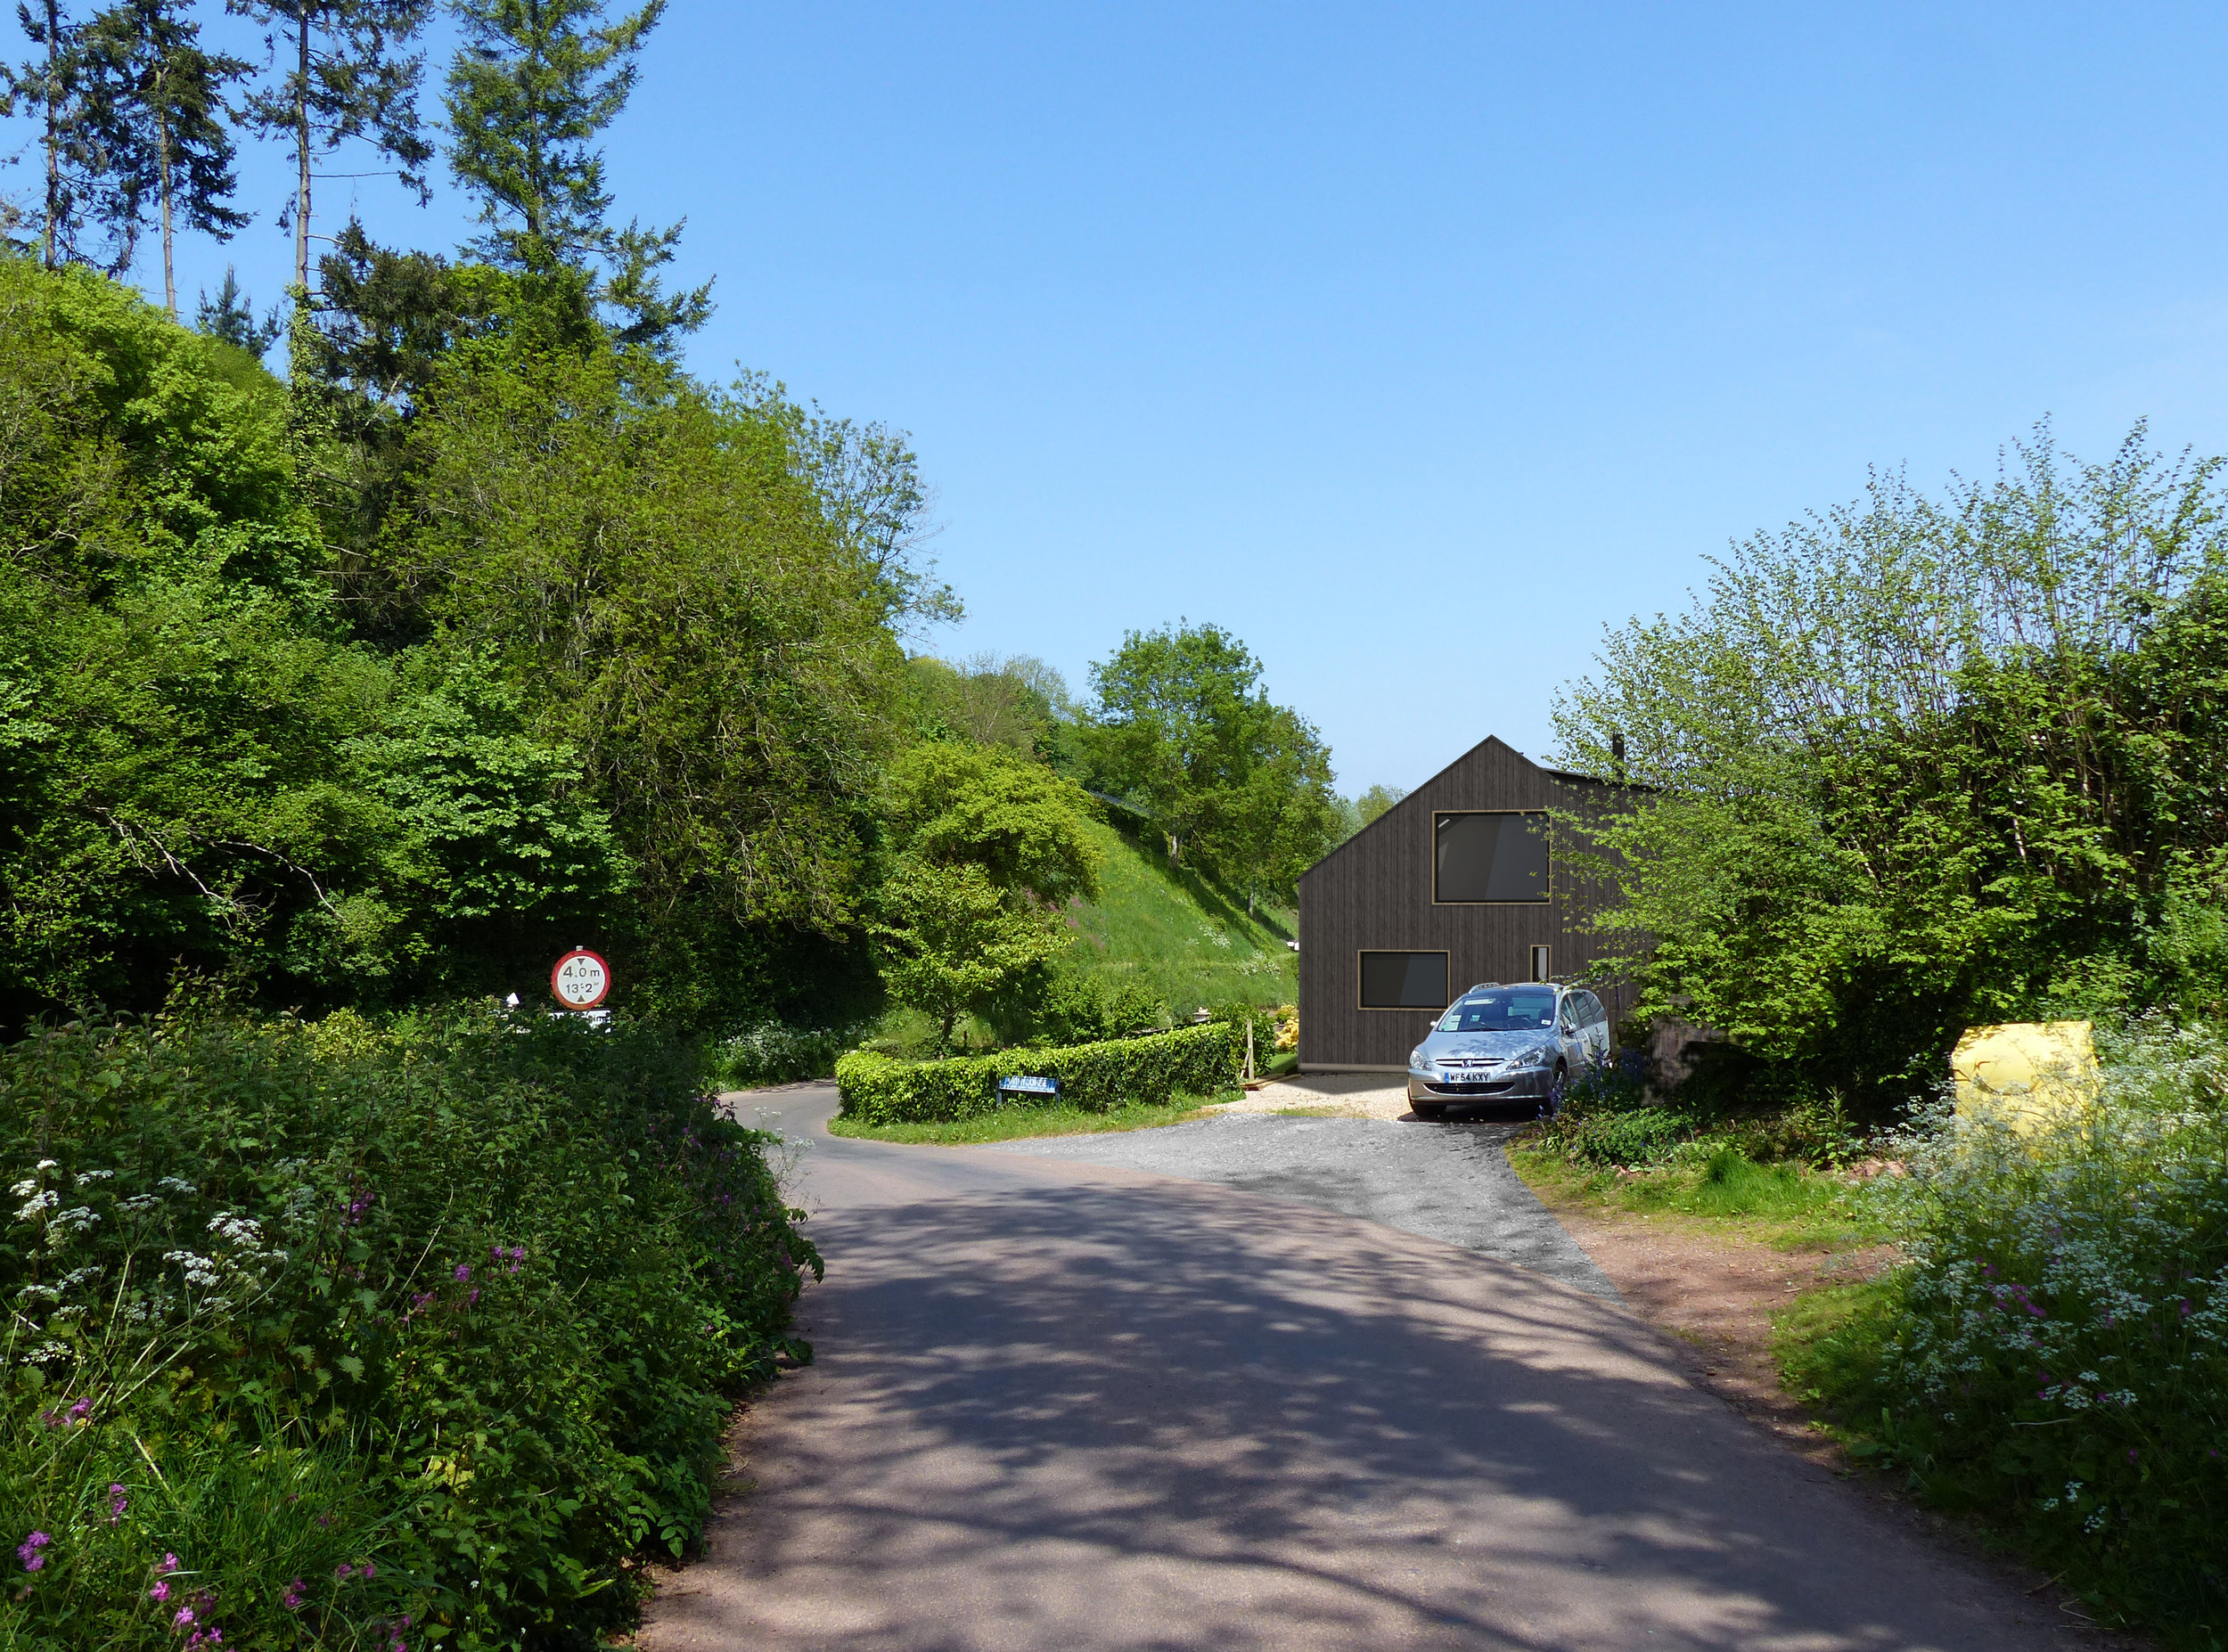 Photo montage showing view entering the village from the south